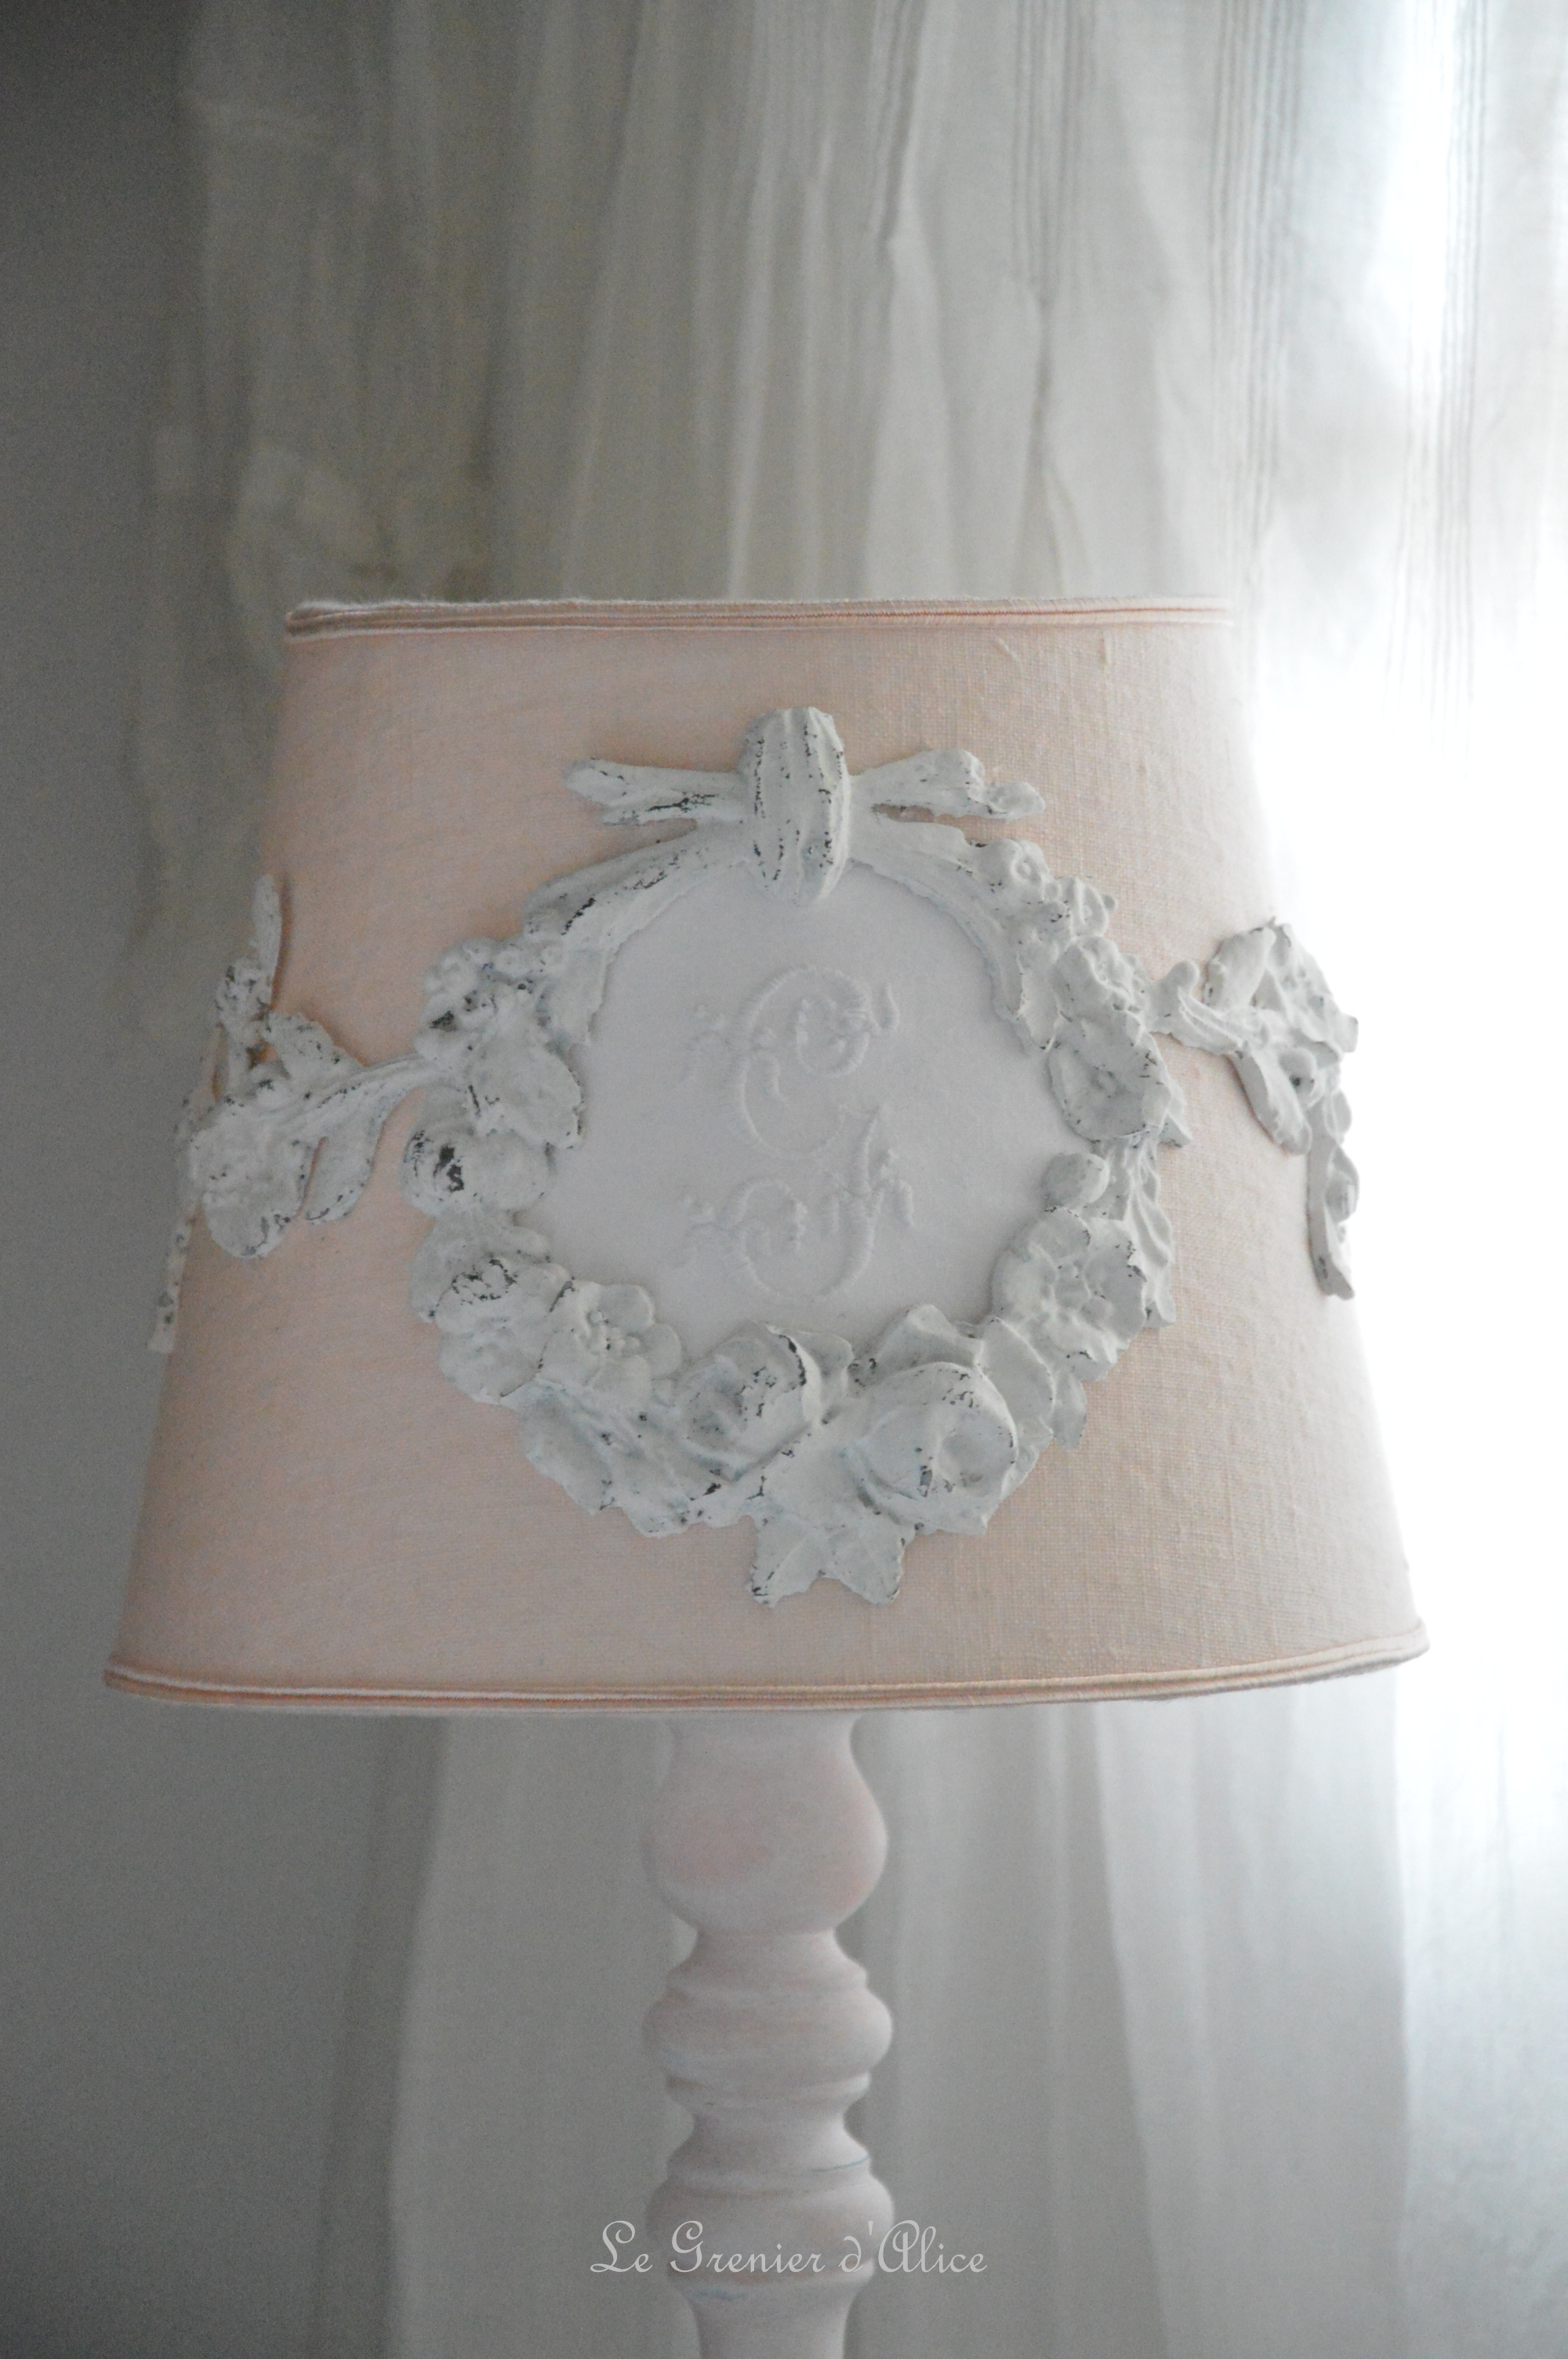 lampe shabby latest splendide pied de lampe shabby chic et raffin with lampe shabby awesome. Black Bedroom Furniture Sets. Home Design Ideas